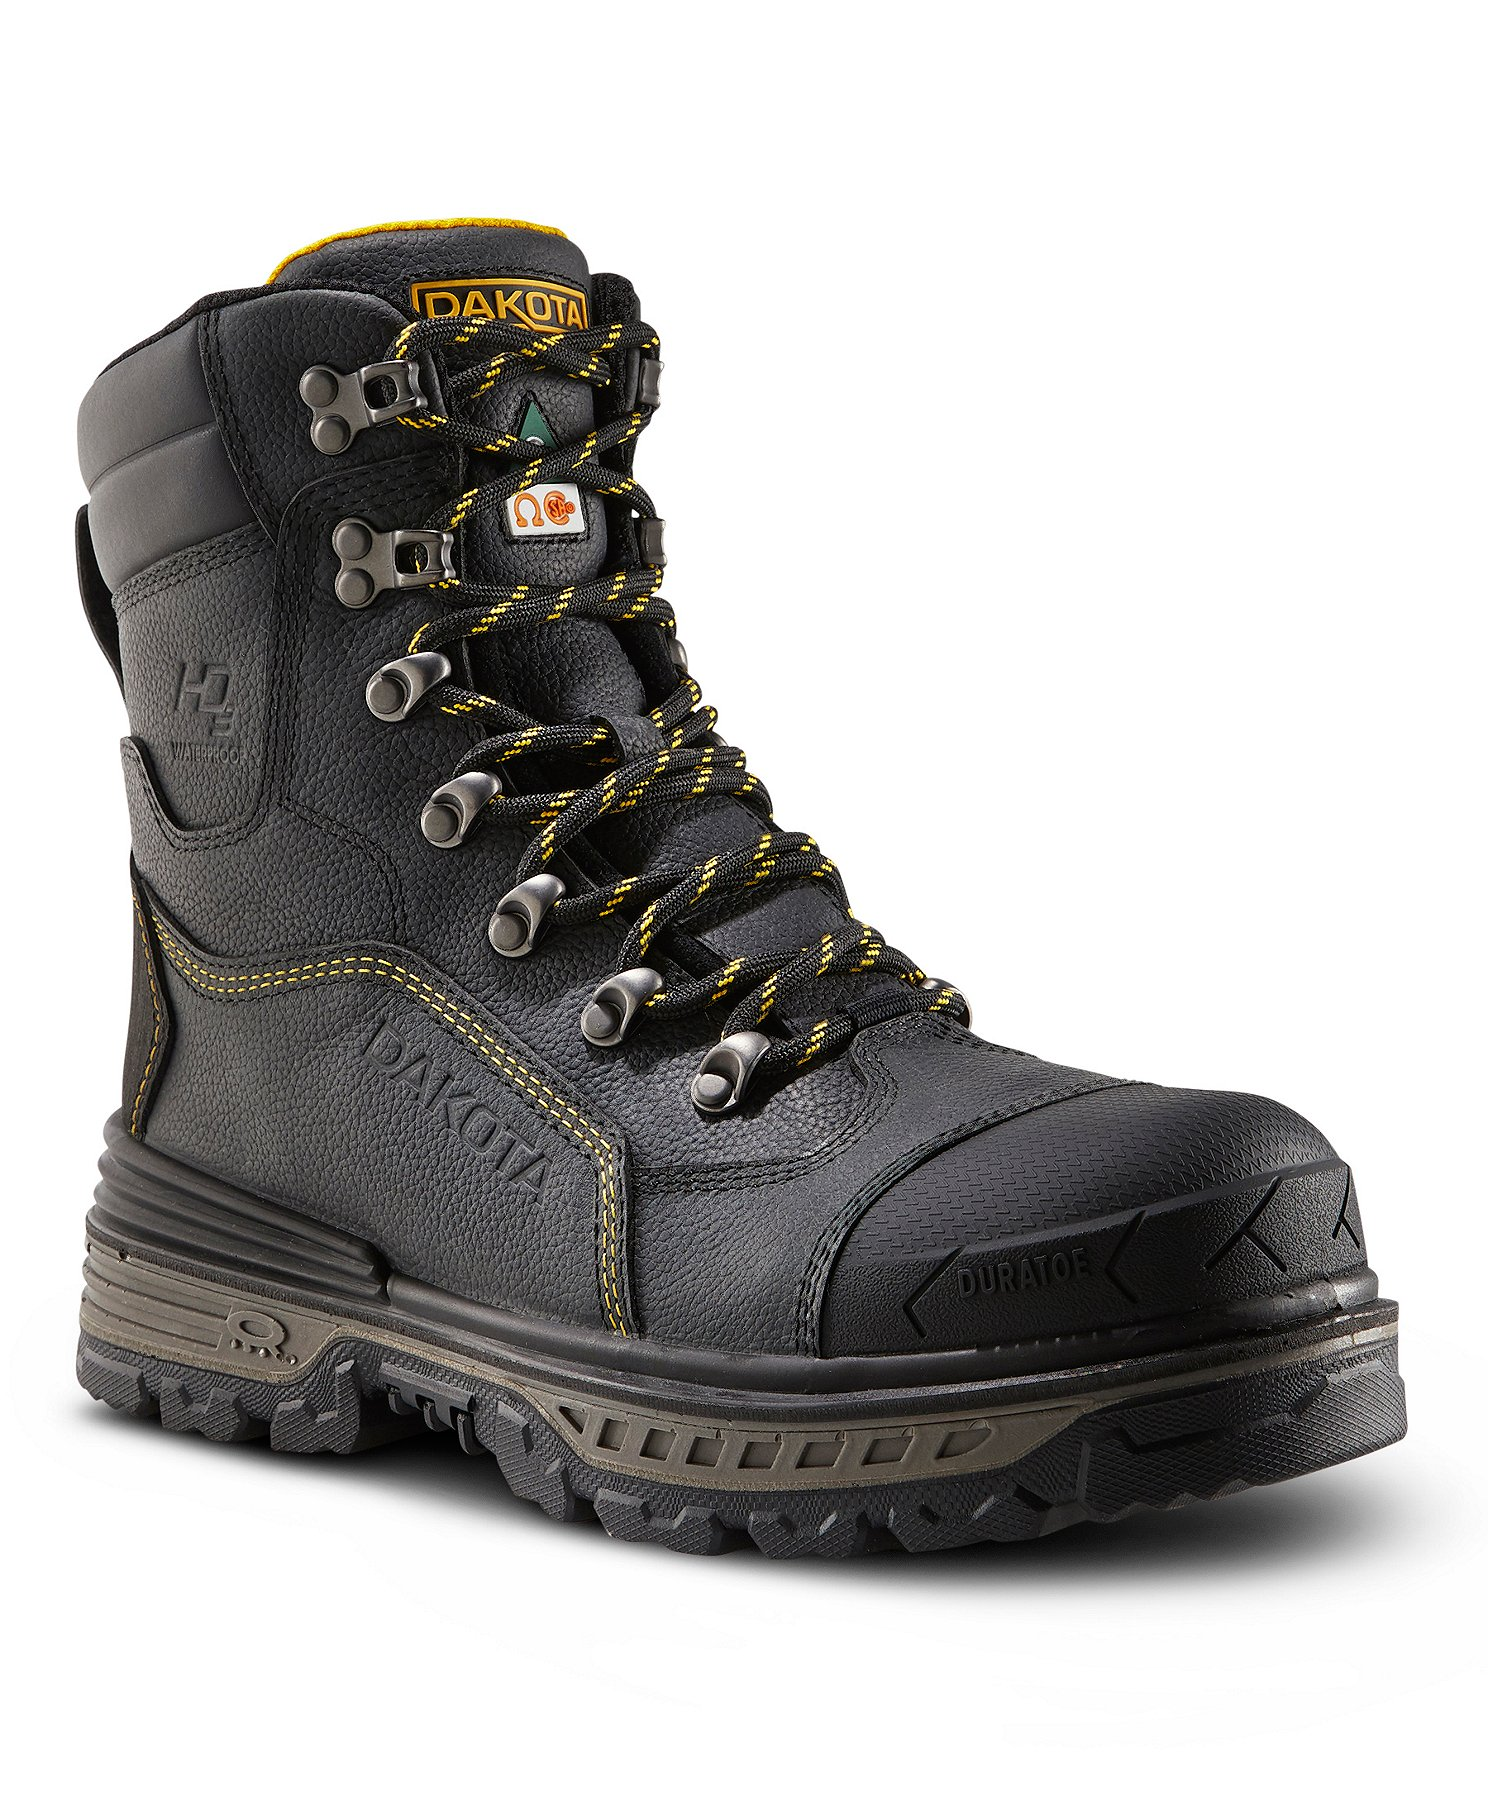 Men's 8516 8 In Composite Toe Compostie Plate HD3 Waterproof Safety Work  Boots | Mark's